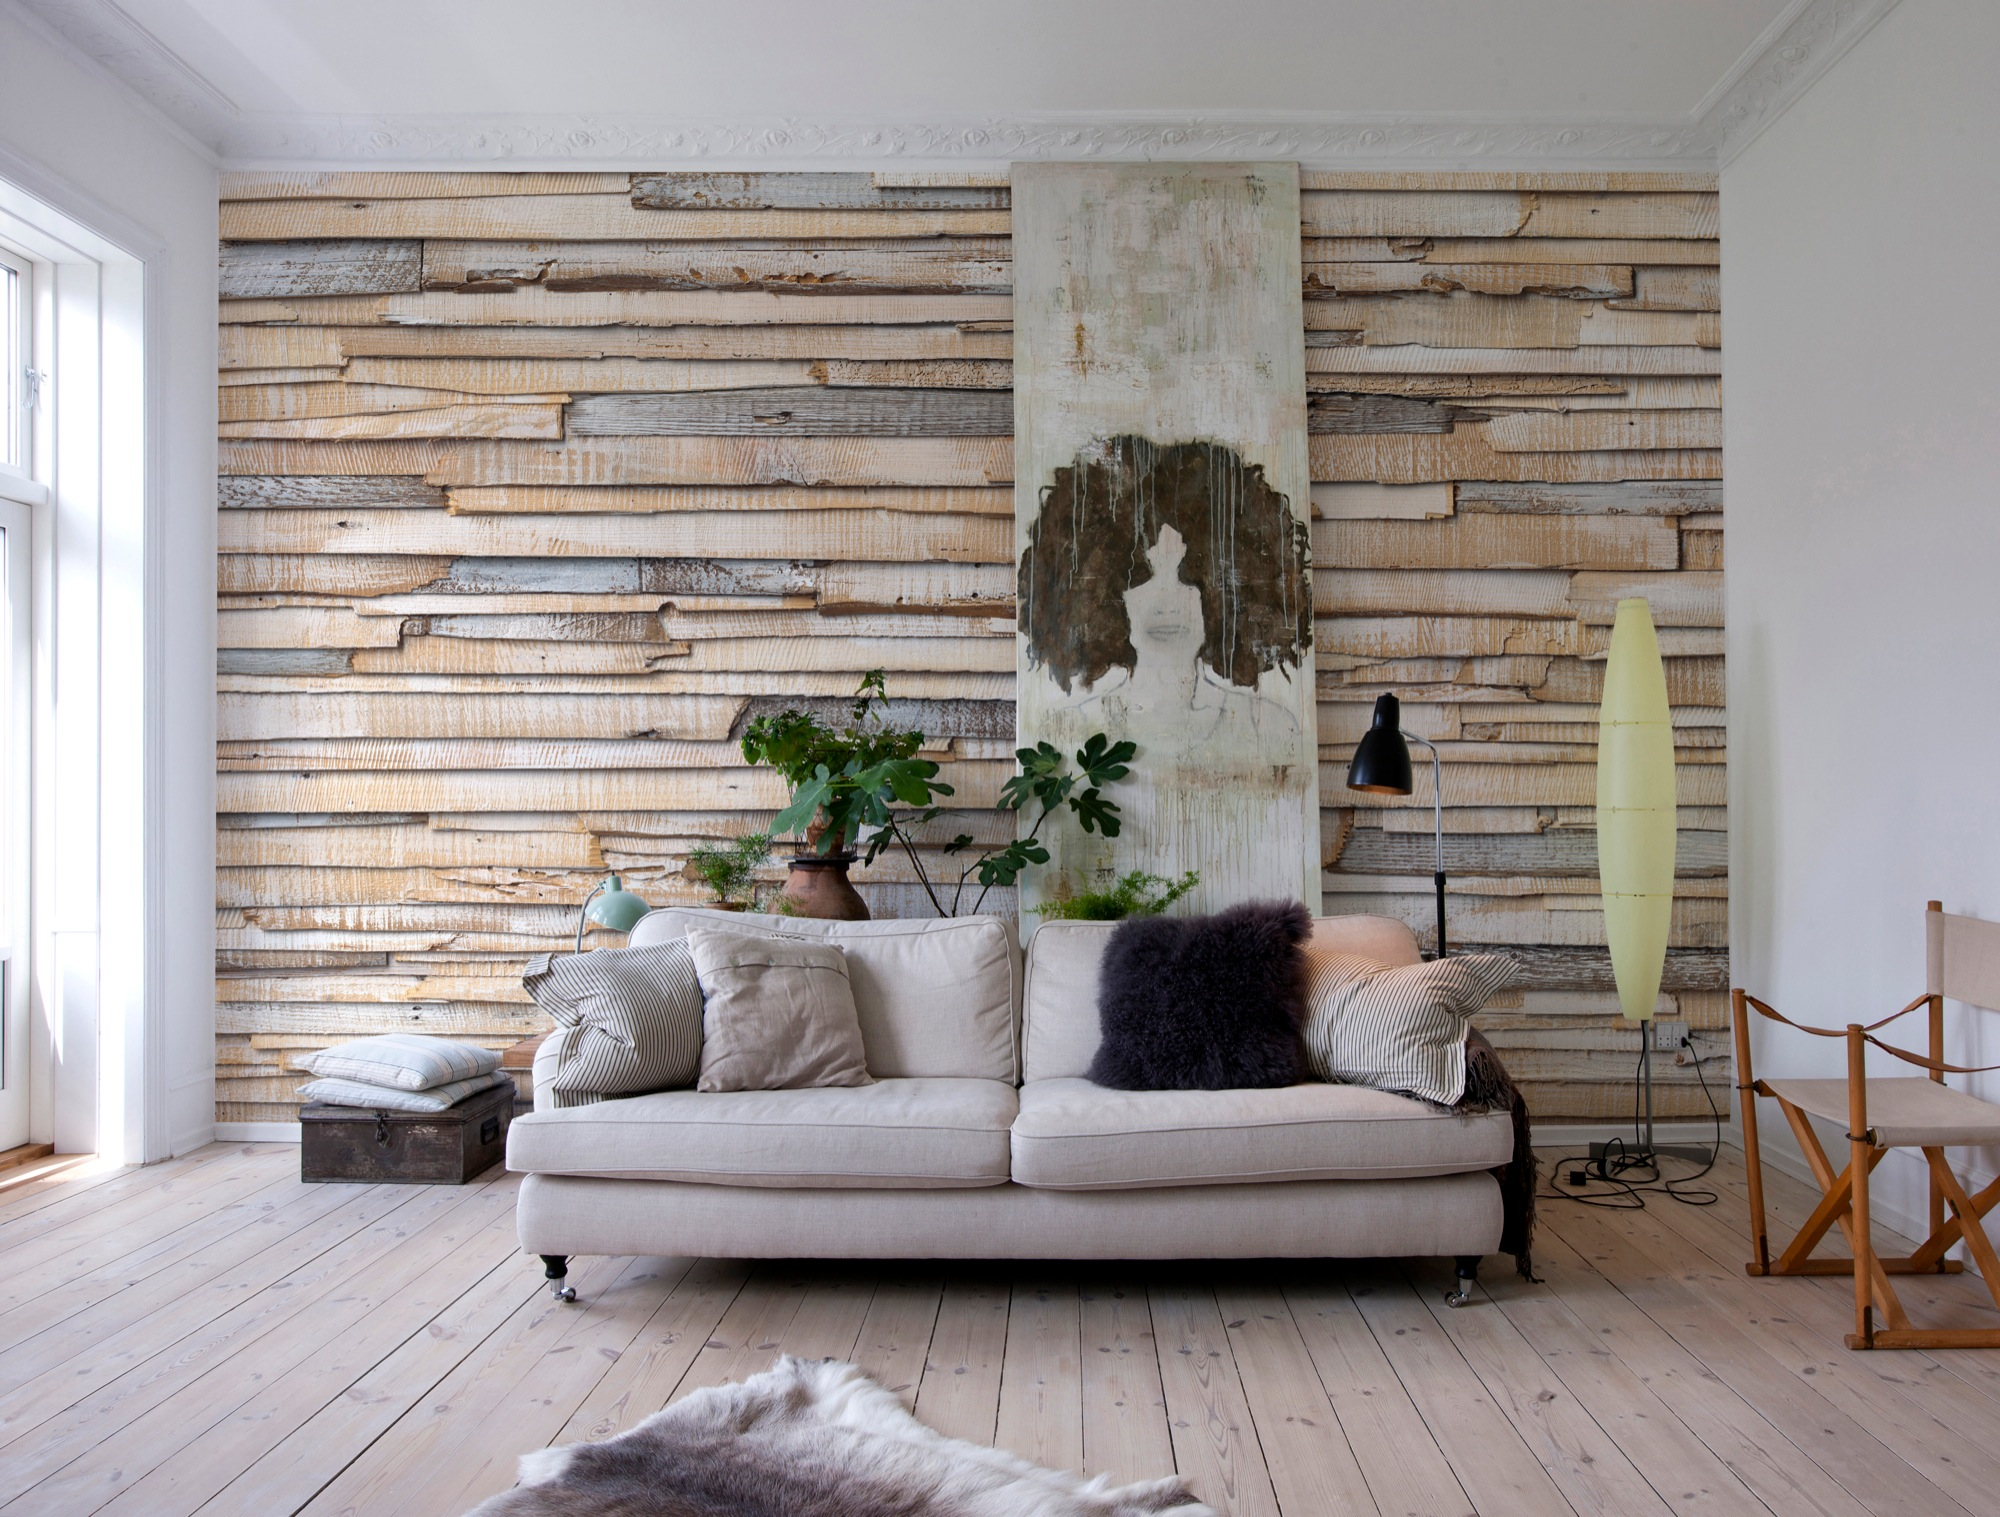 Cool & cozy murals with wood and stone motifs